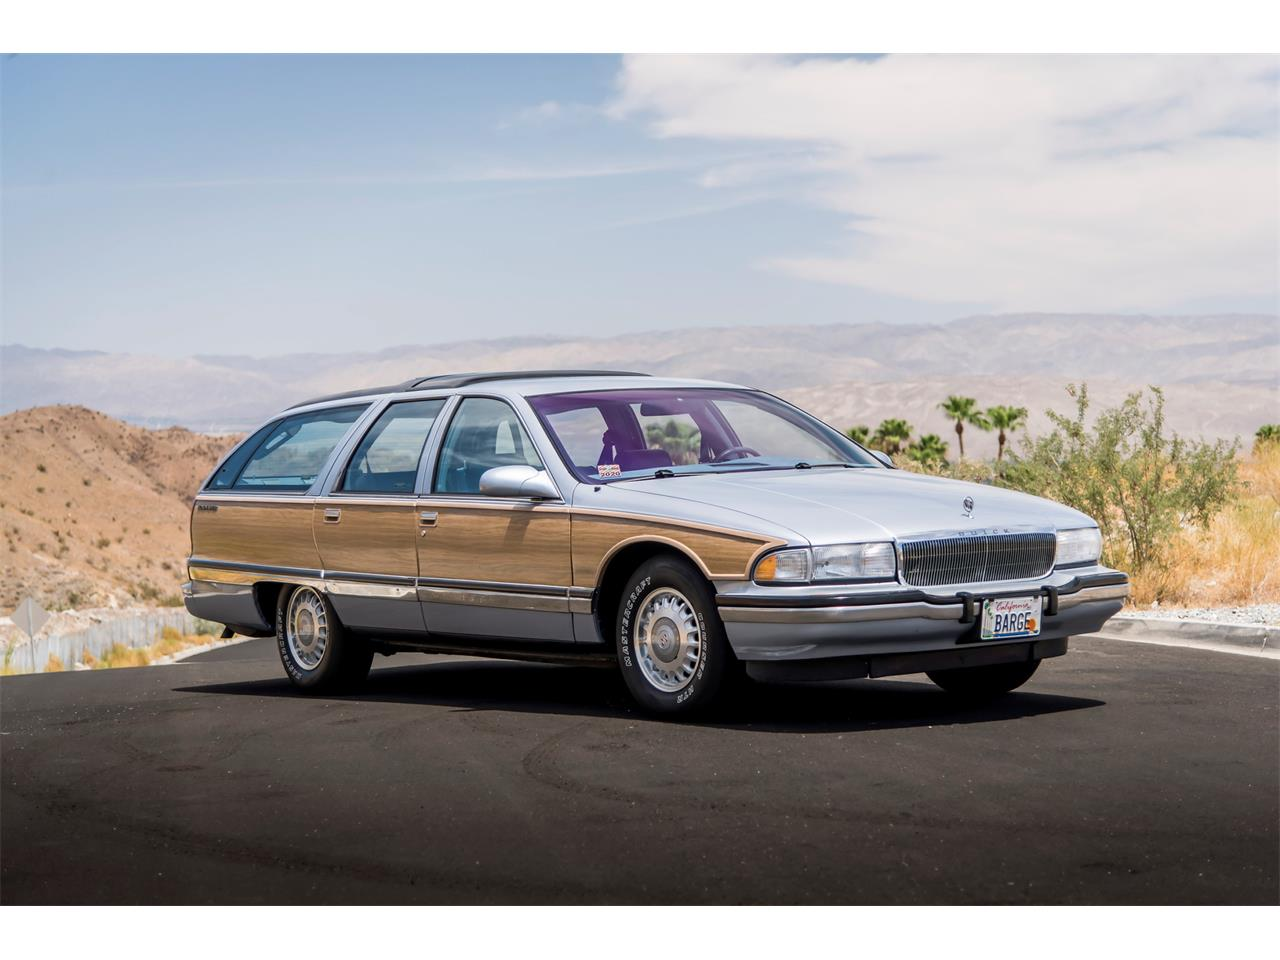 1995 Buick Roadmaster for sale in Cathedral City, CA – photo 2